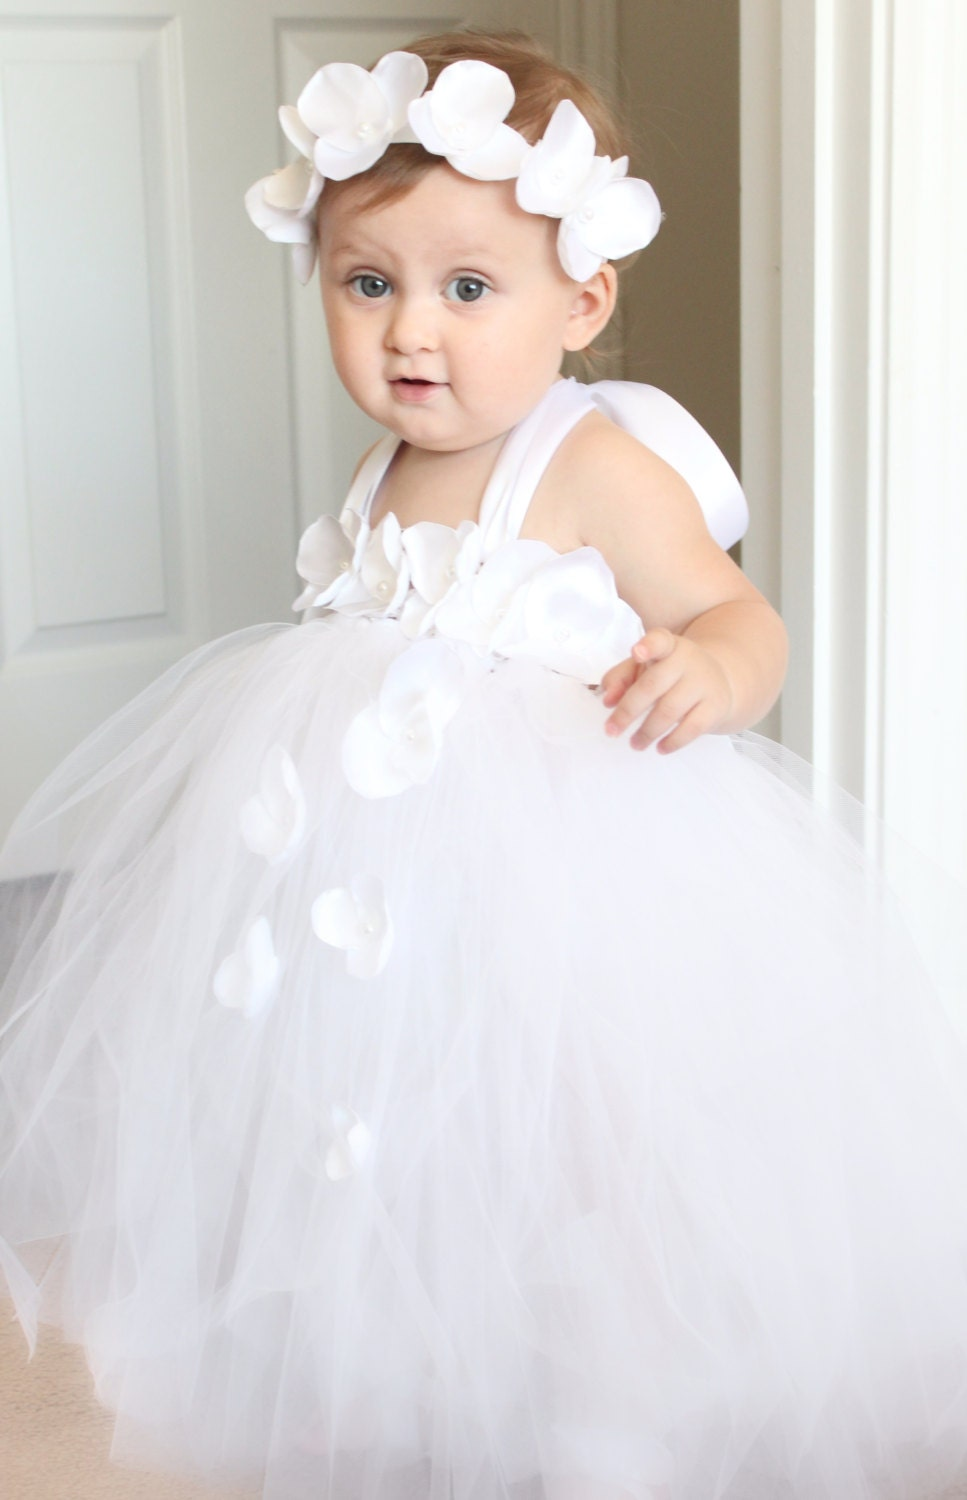 d4126e2a750 Gorgeous White Petal Flower Girl Tutu Dress for your 6-18